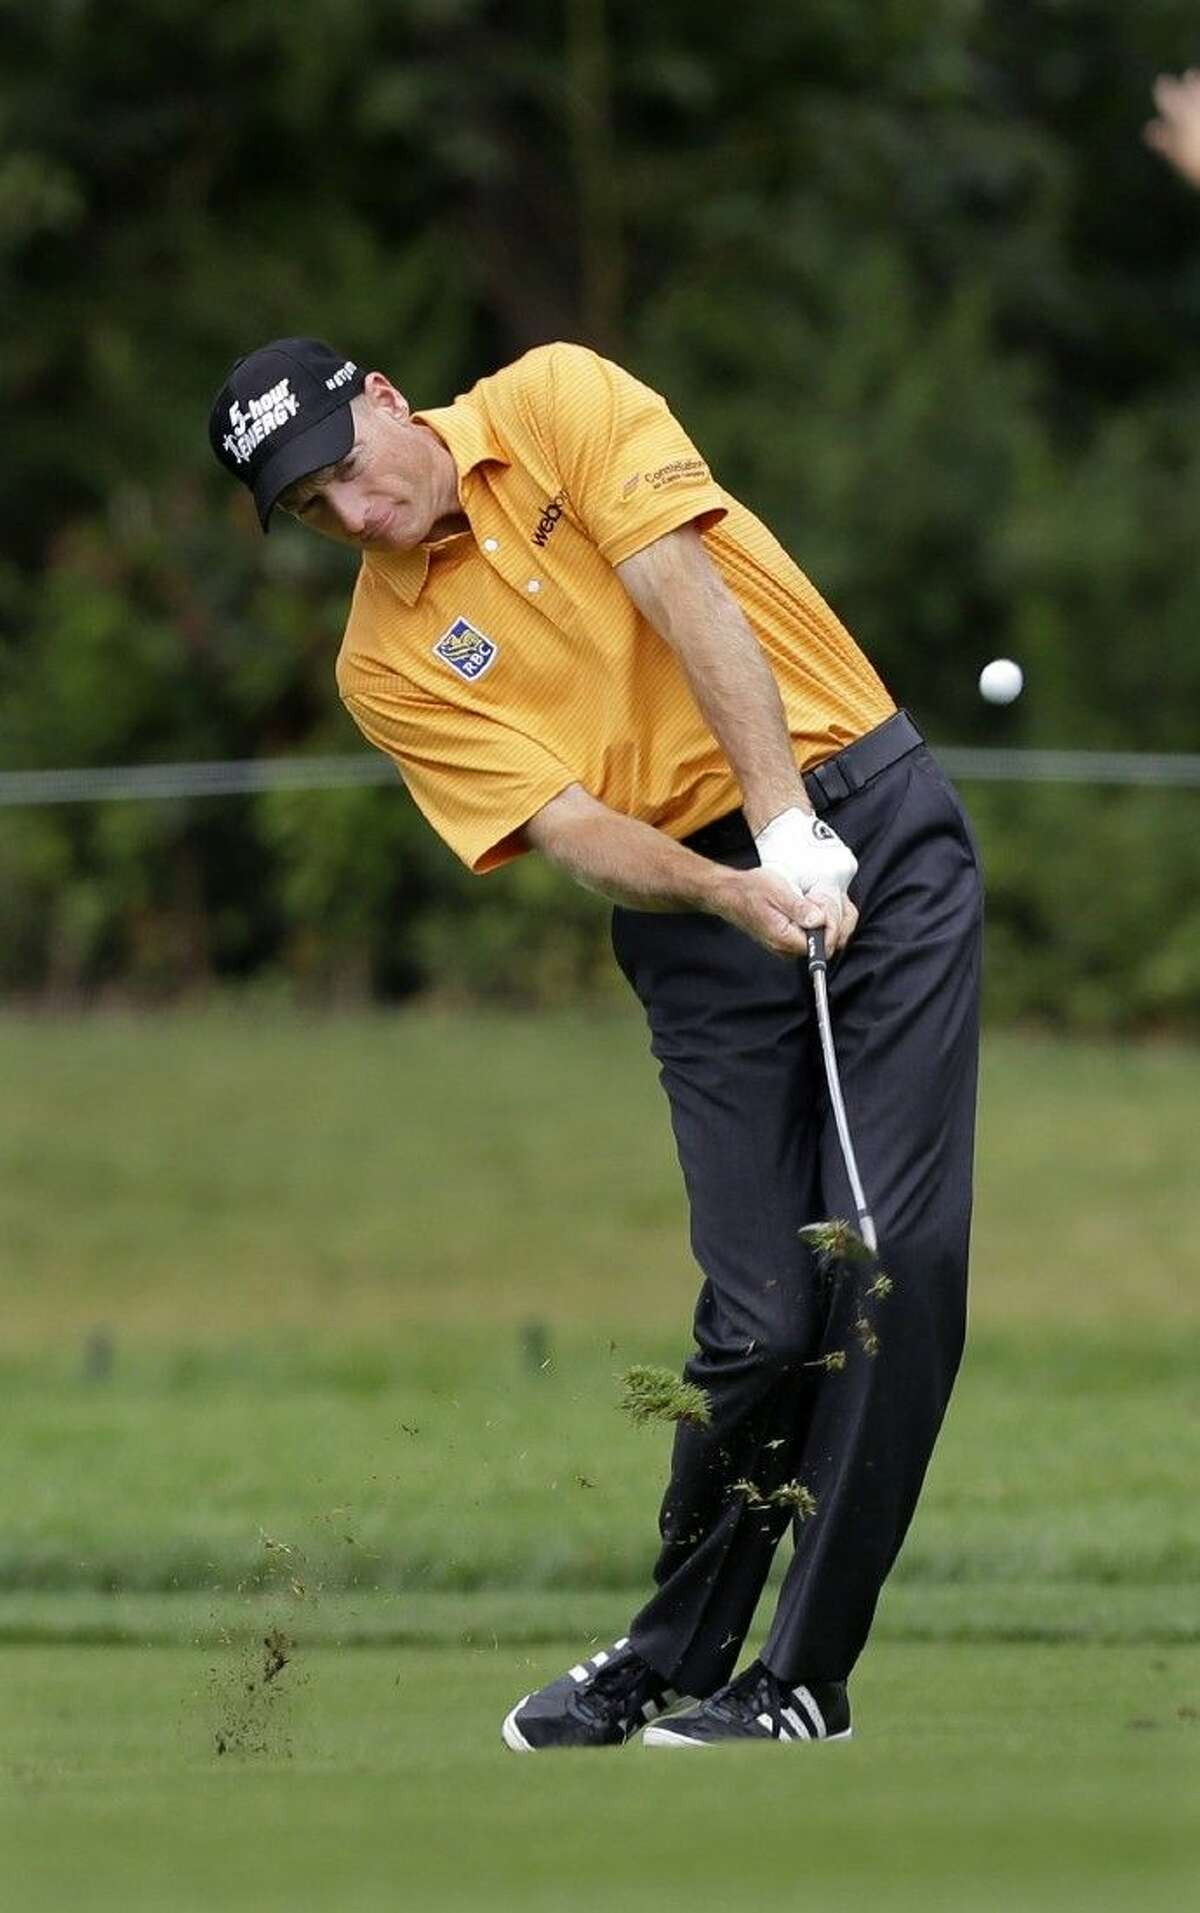 Jim Furyk hits a fairway shot on the first hole during the third round of play at The Barclays golf tournament Saturday in Paramus, N.J.